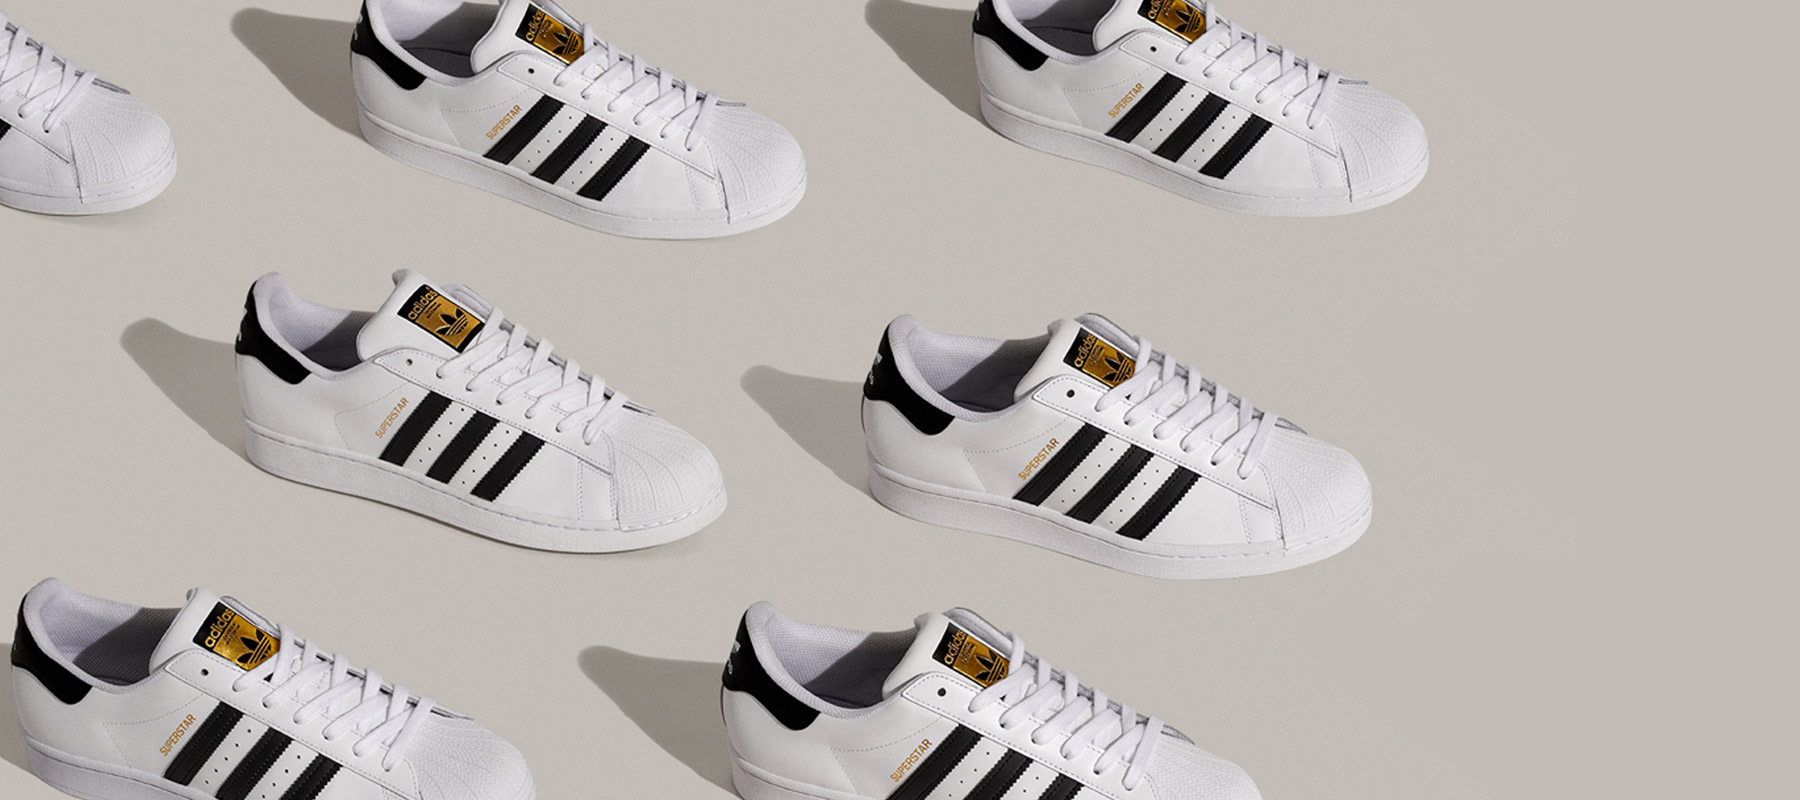 Shop adidas shoes, clothing, and accessories at Journeys